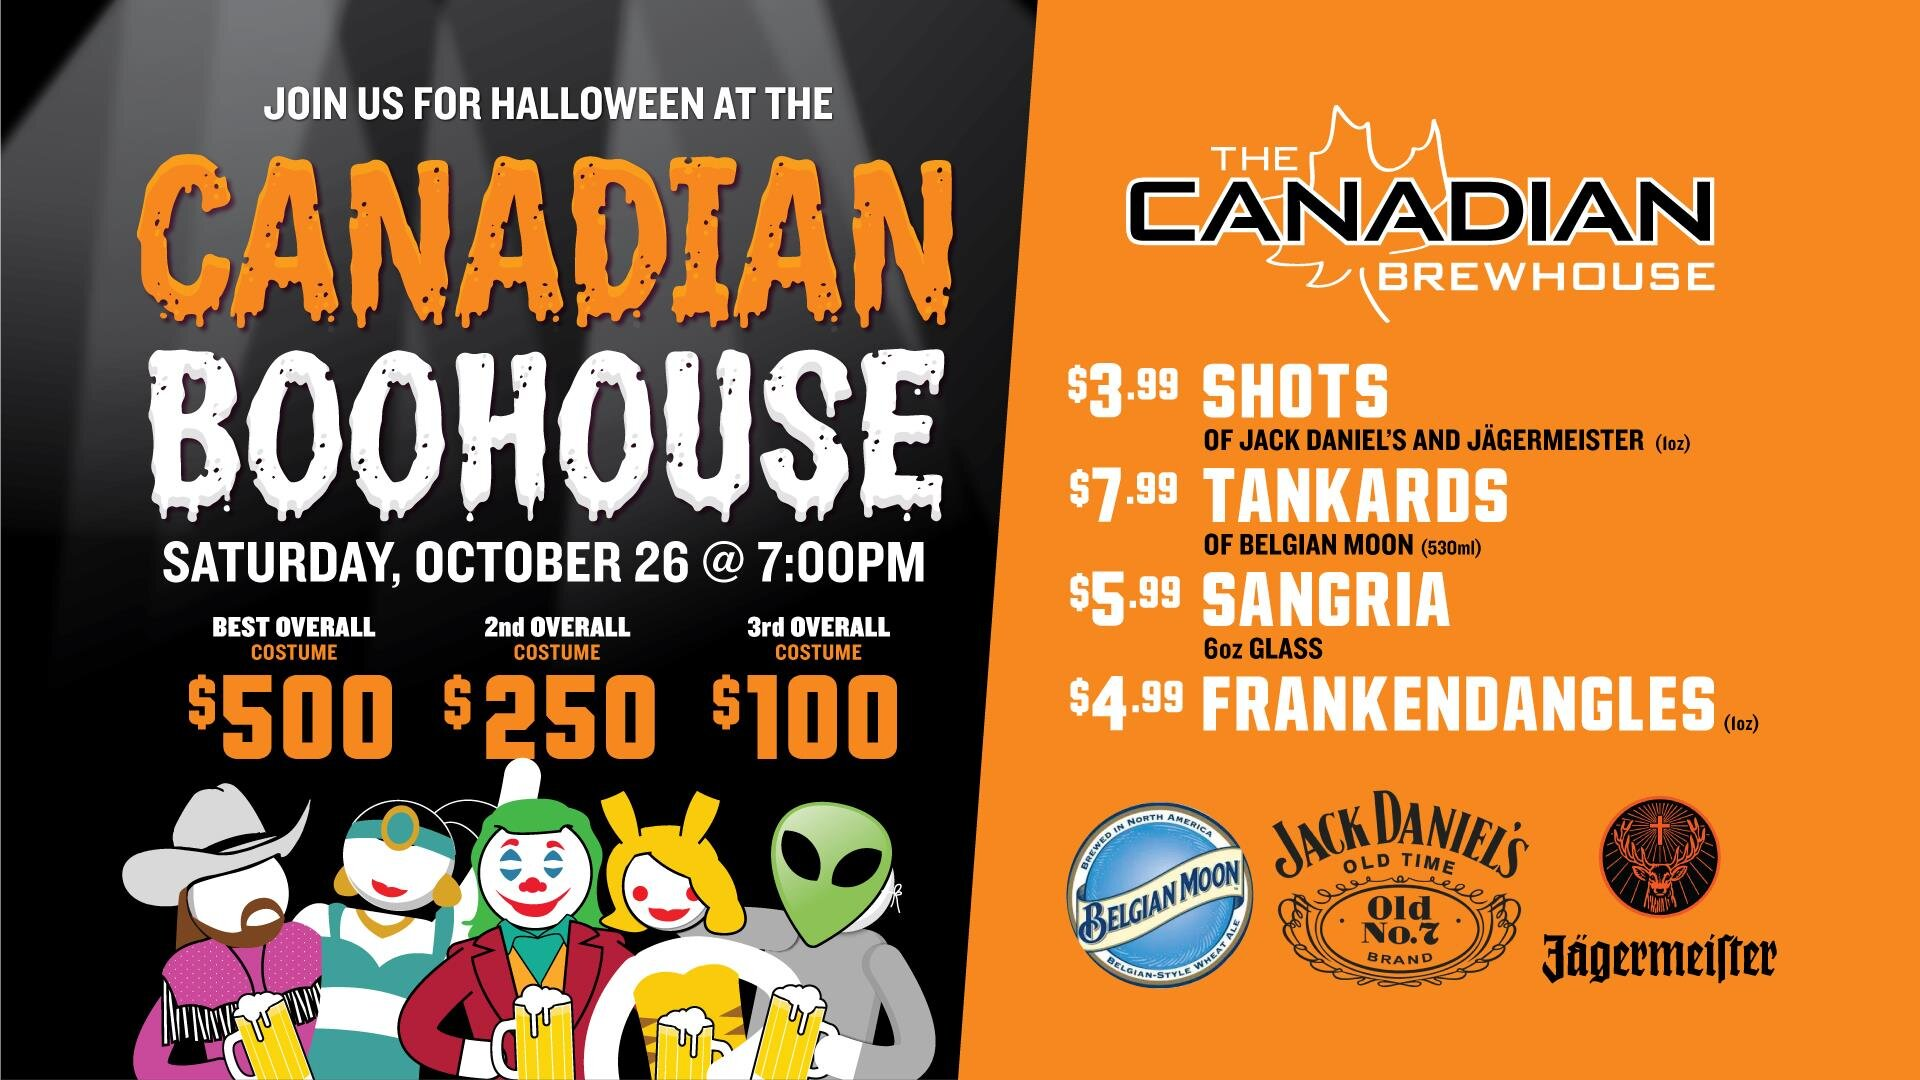 Canadian Boohouse Halloween Party - Canadian Brewhouse - QuarrySaturday, October 26 from 7pm to 2am